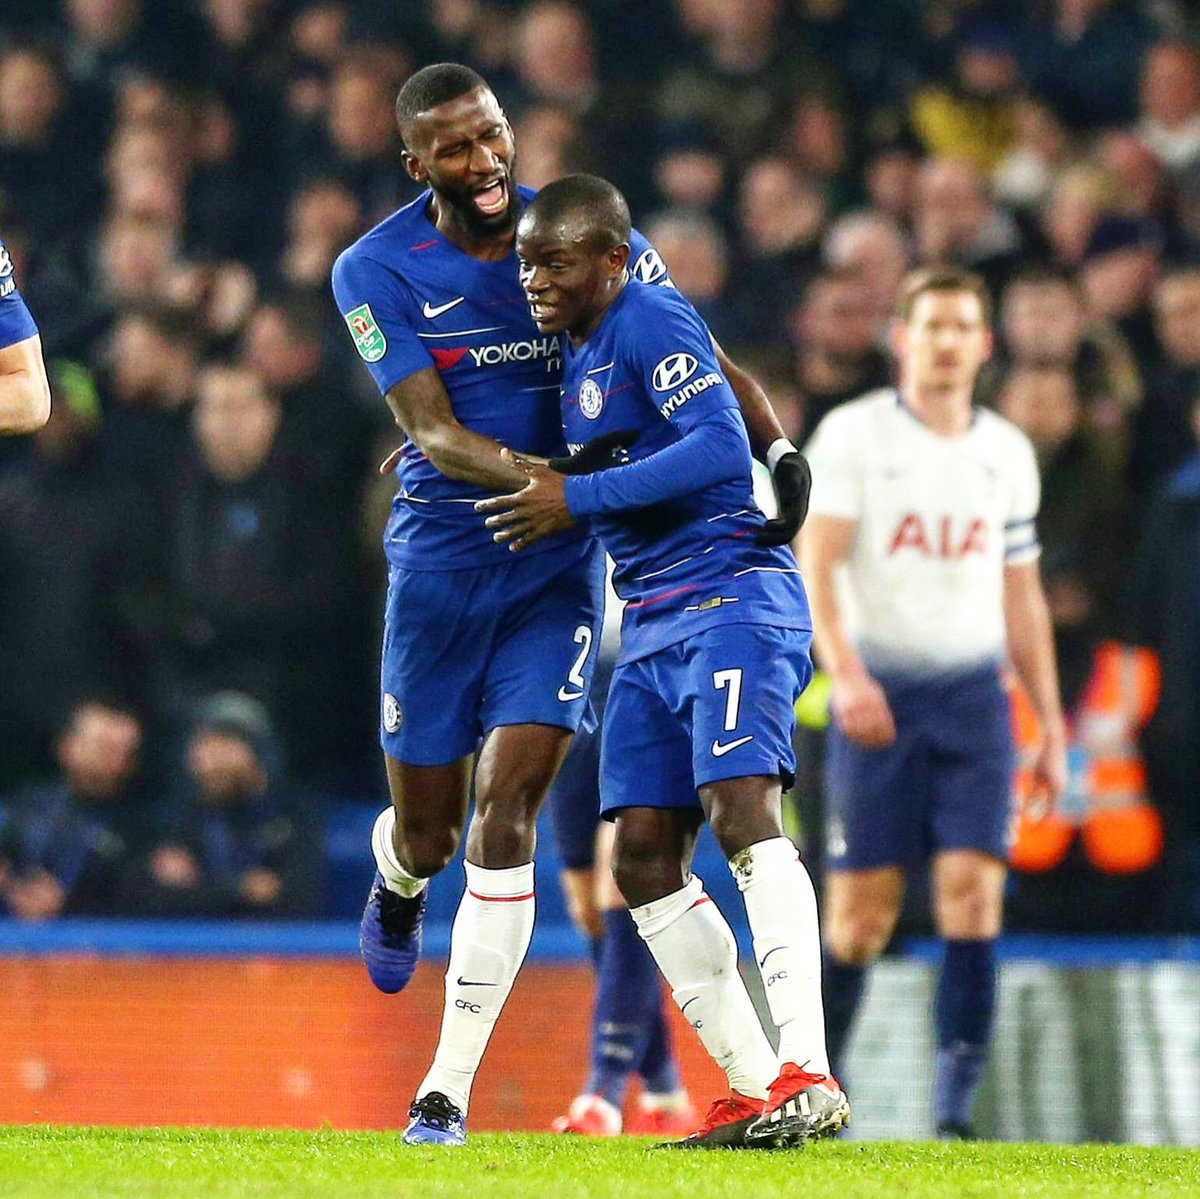 Don't be sooo shy broooo... 😂🤙🏾😘 We're into the finals!!! 💙 Great mentality from the team tonight! 💪🏾 #Hustle #AlwaysBelieve #LeagueCup @ChelseaFC @nglkante